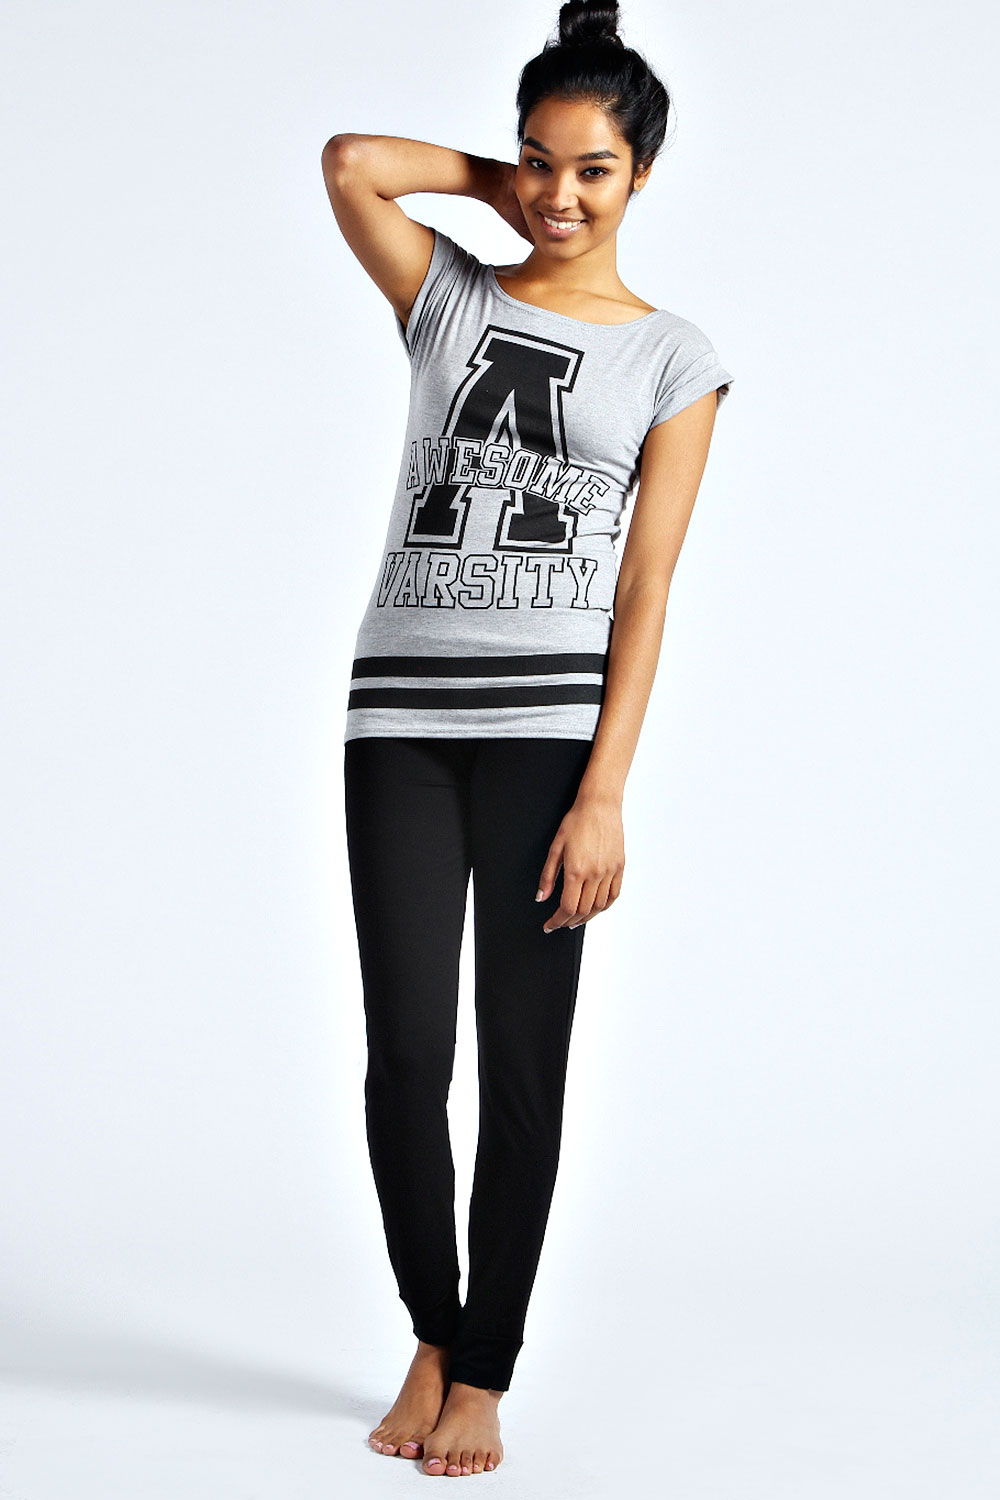 Boohoo-Roxy-Awesome-Varsity-Top-And-Leggings-In-Multi